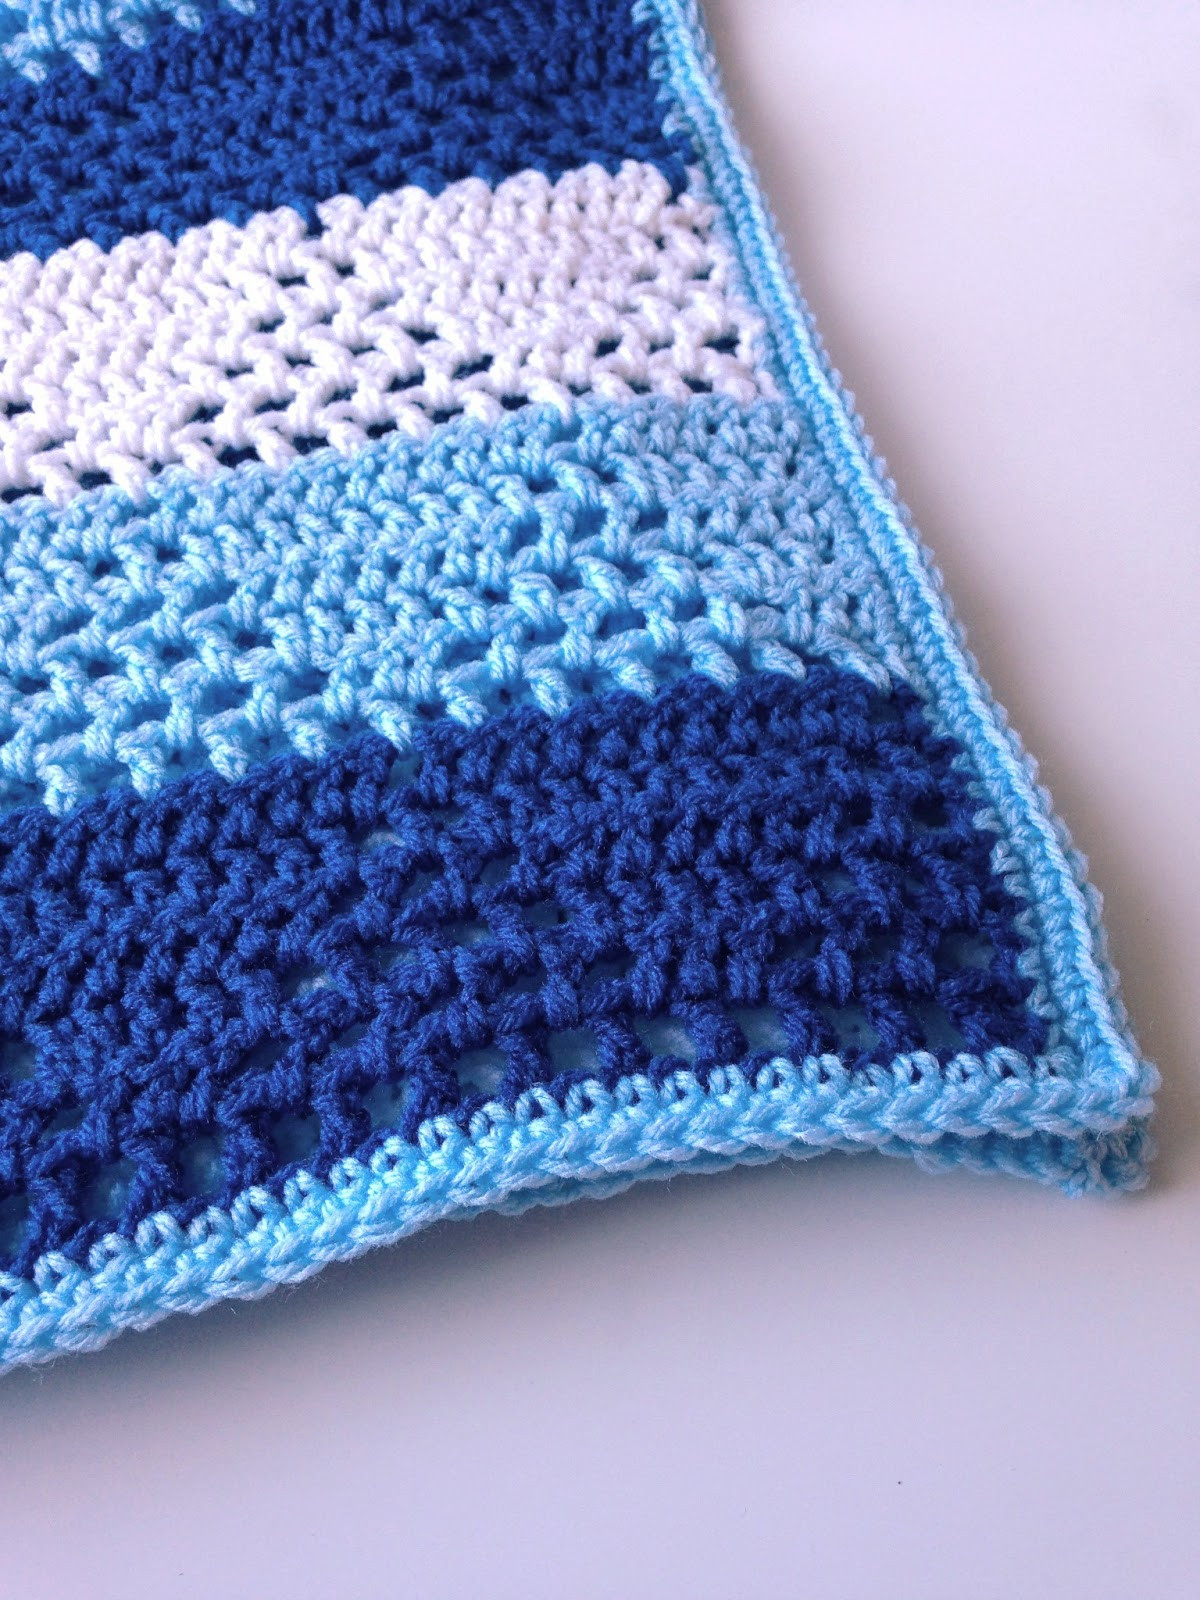 Baby Boy Crochet Blanket Patterns Elegant 5 Little Monsters Triangles & Stripes Baby Blanket Of Baby Boy Crochet Blanket Patterns New Free Baby Blanket Crochet Patterns Easy